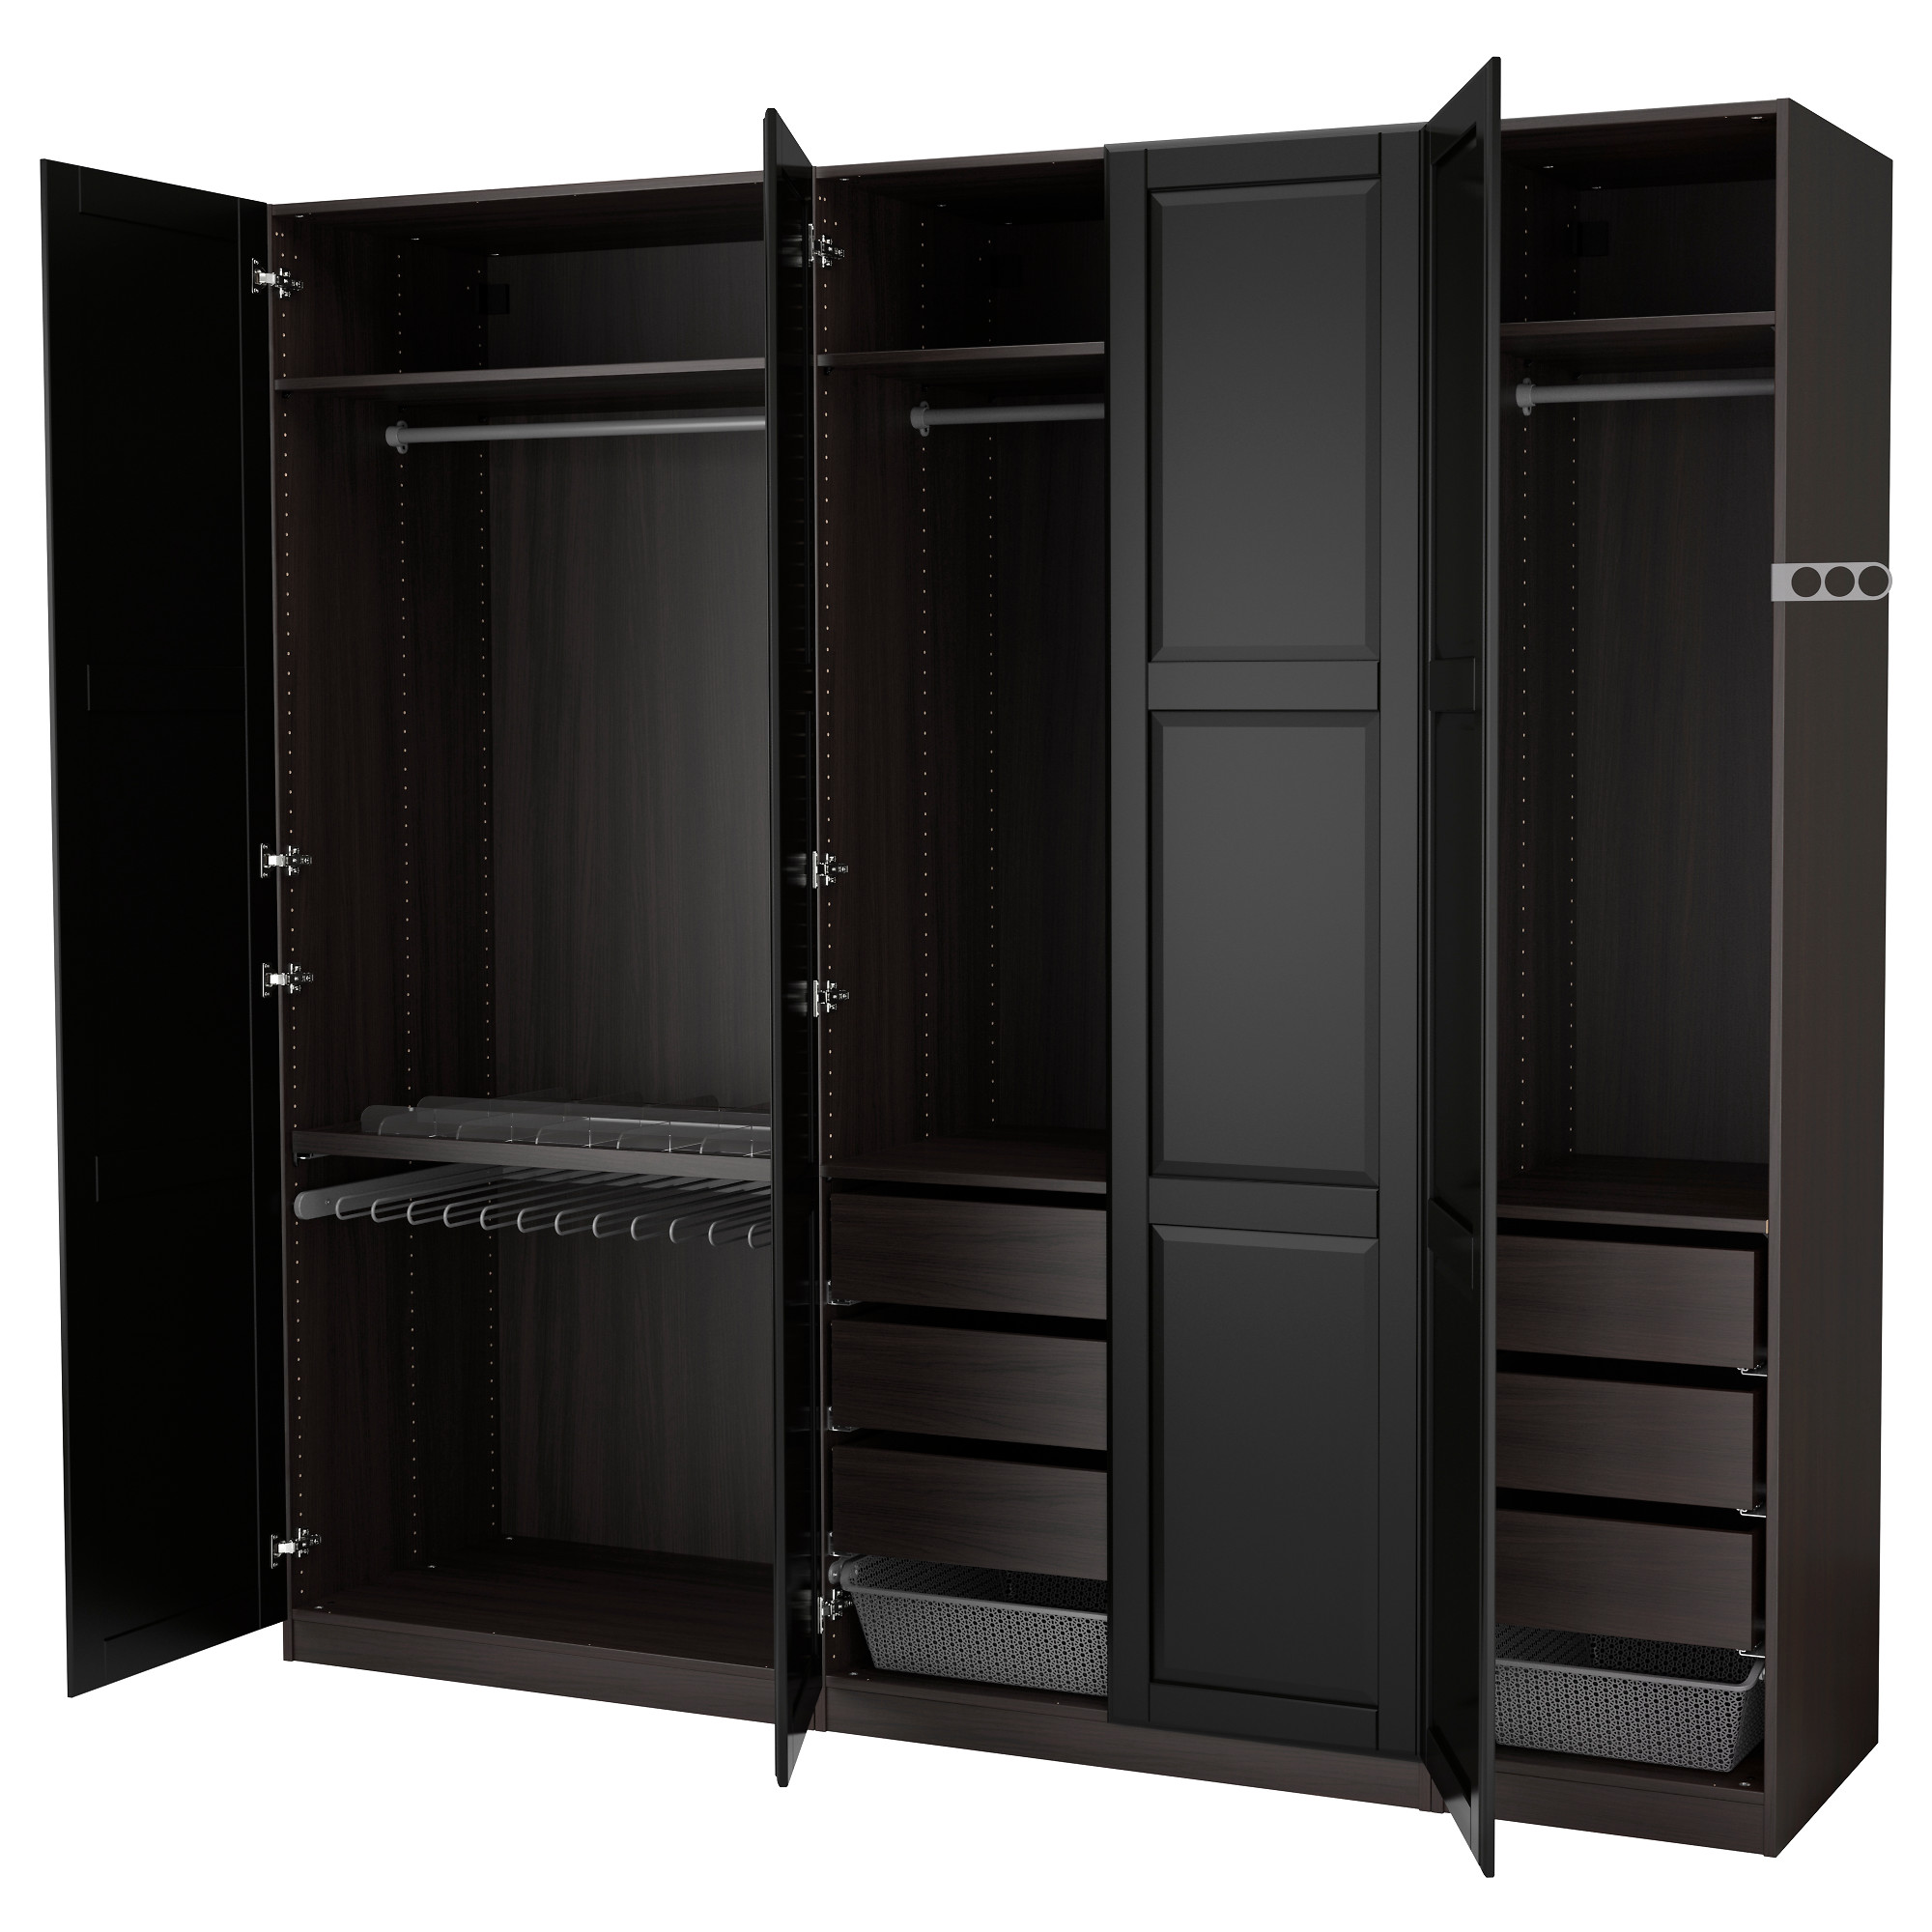 pax wardrobe soft closing hinge 98 3 8x23 5 8x93 1 8 ikea. Black Bedroom Furniture Sets. Home Design Ideas